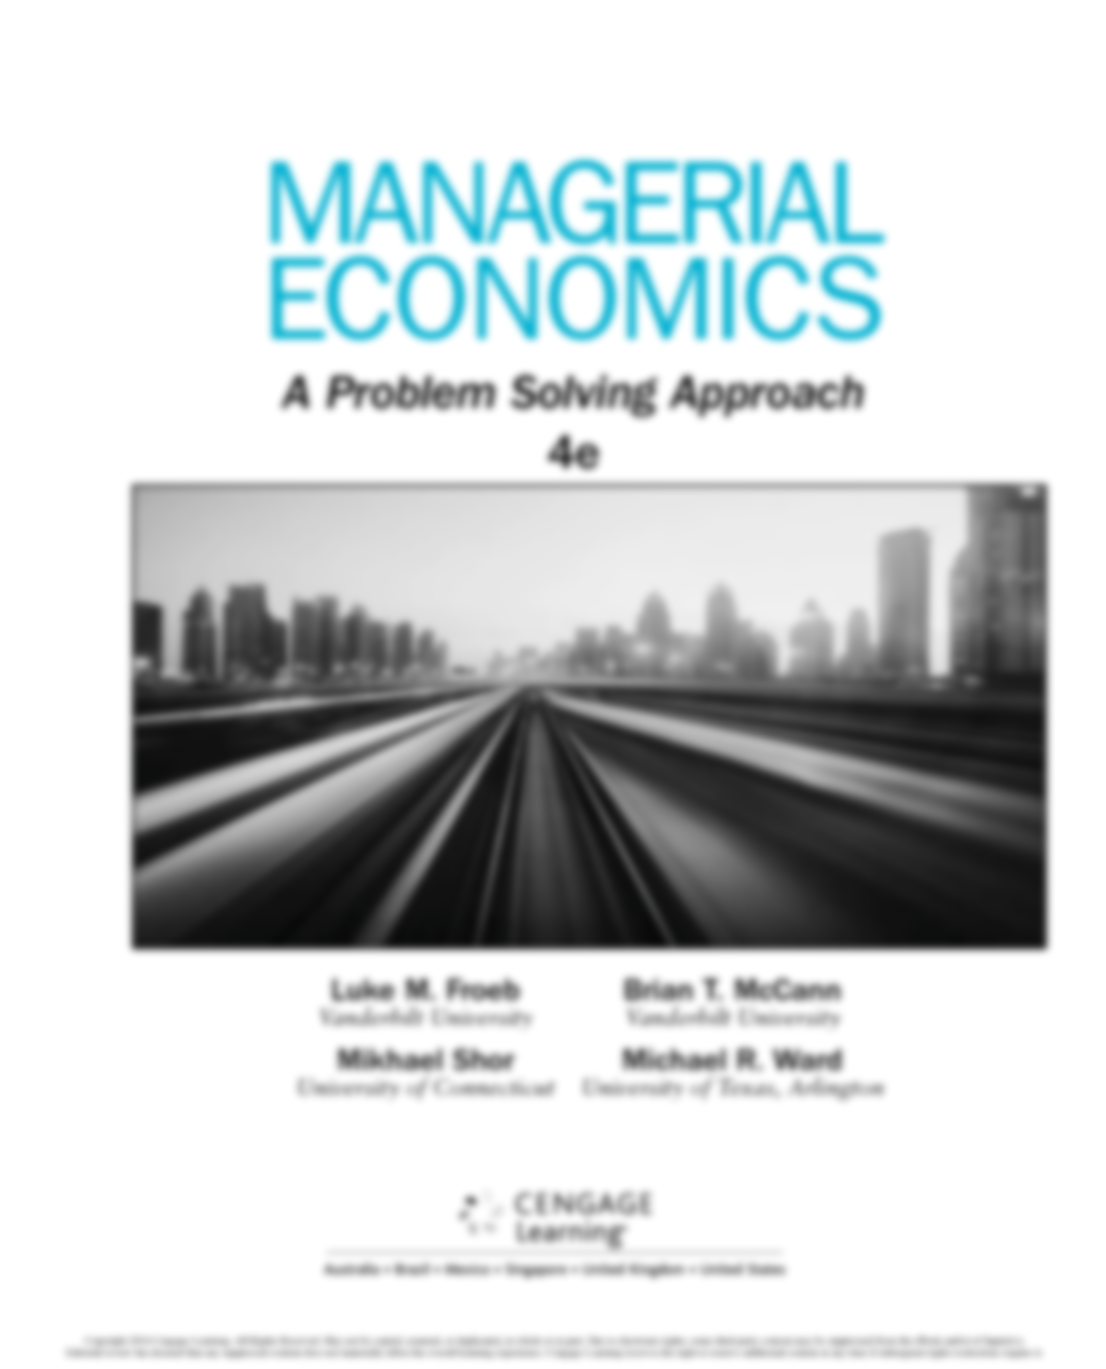 managerial economics a problem solving approach Managerial economics a problem solving approach answer keypdf - 4adb6daf93dc92d9299d456ea849d915 end of the reading this.